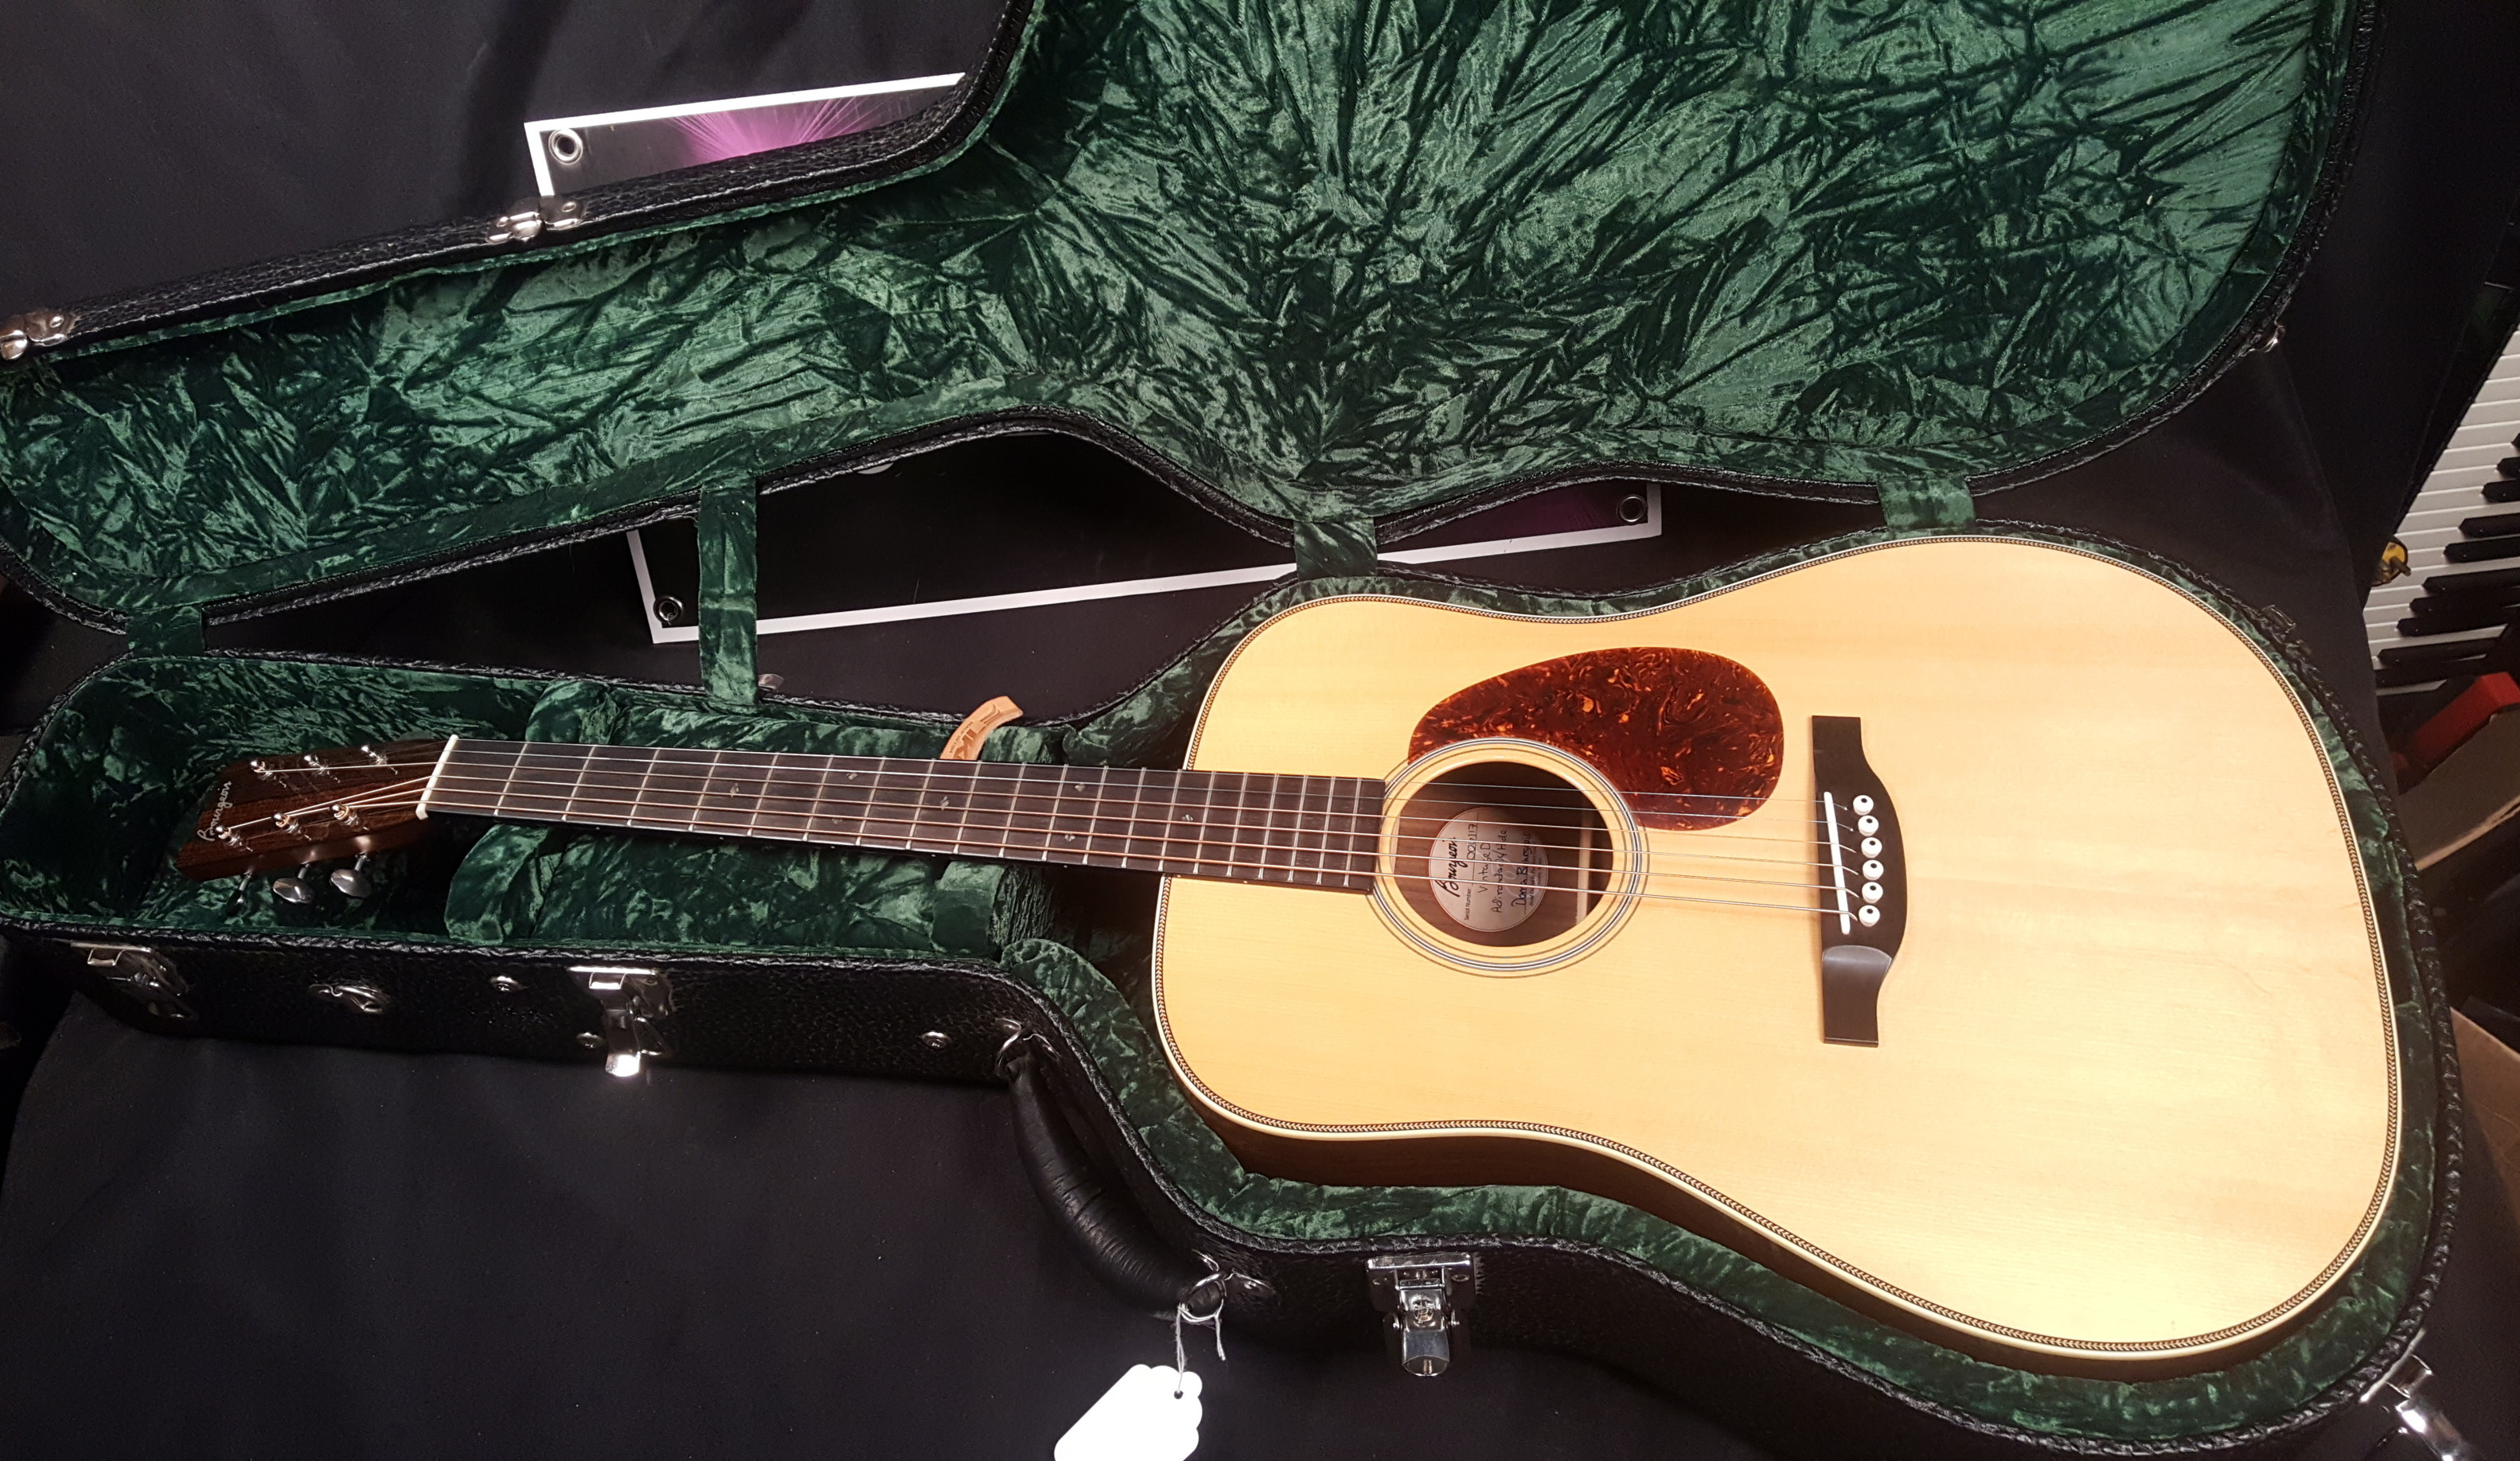 BOURGEOIS VINTAGE DREADNOUGHT Acoustic Guitar W/HSC - Adirondack Spruce Top!!